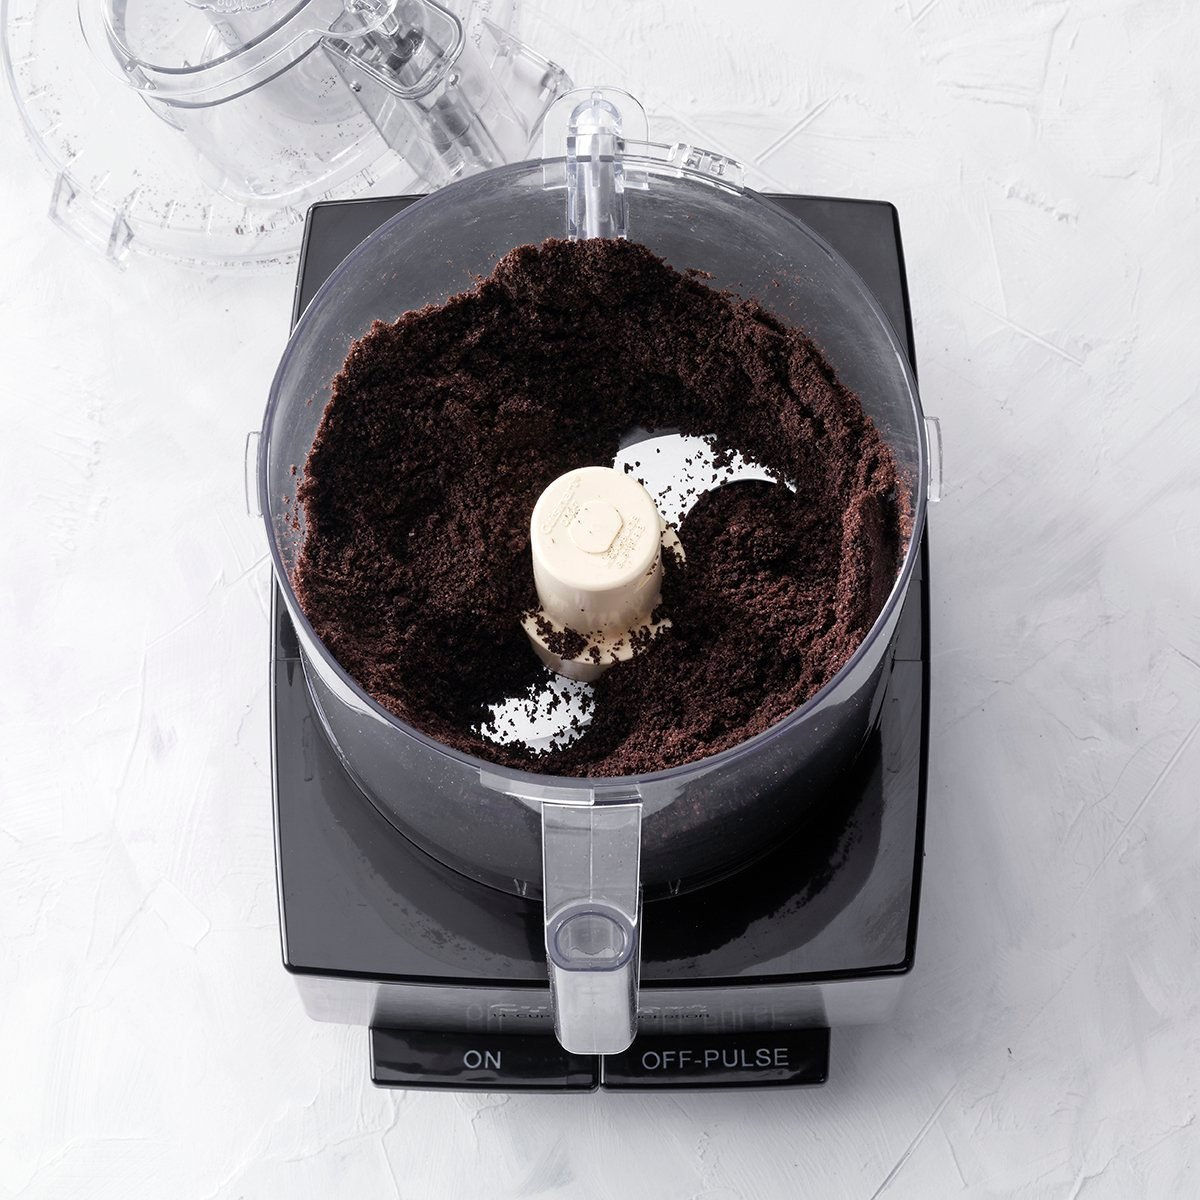 THGKH19, Food Processor for Oreo Cookie Crumbs